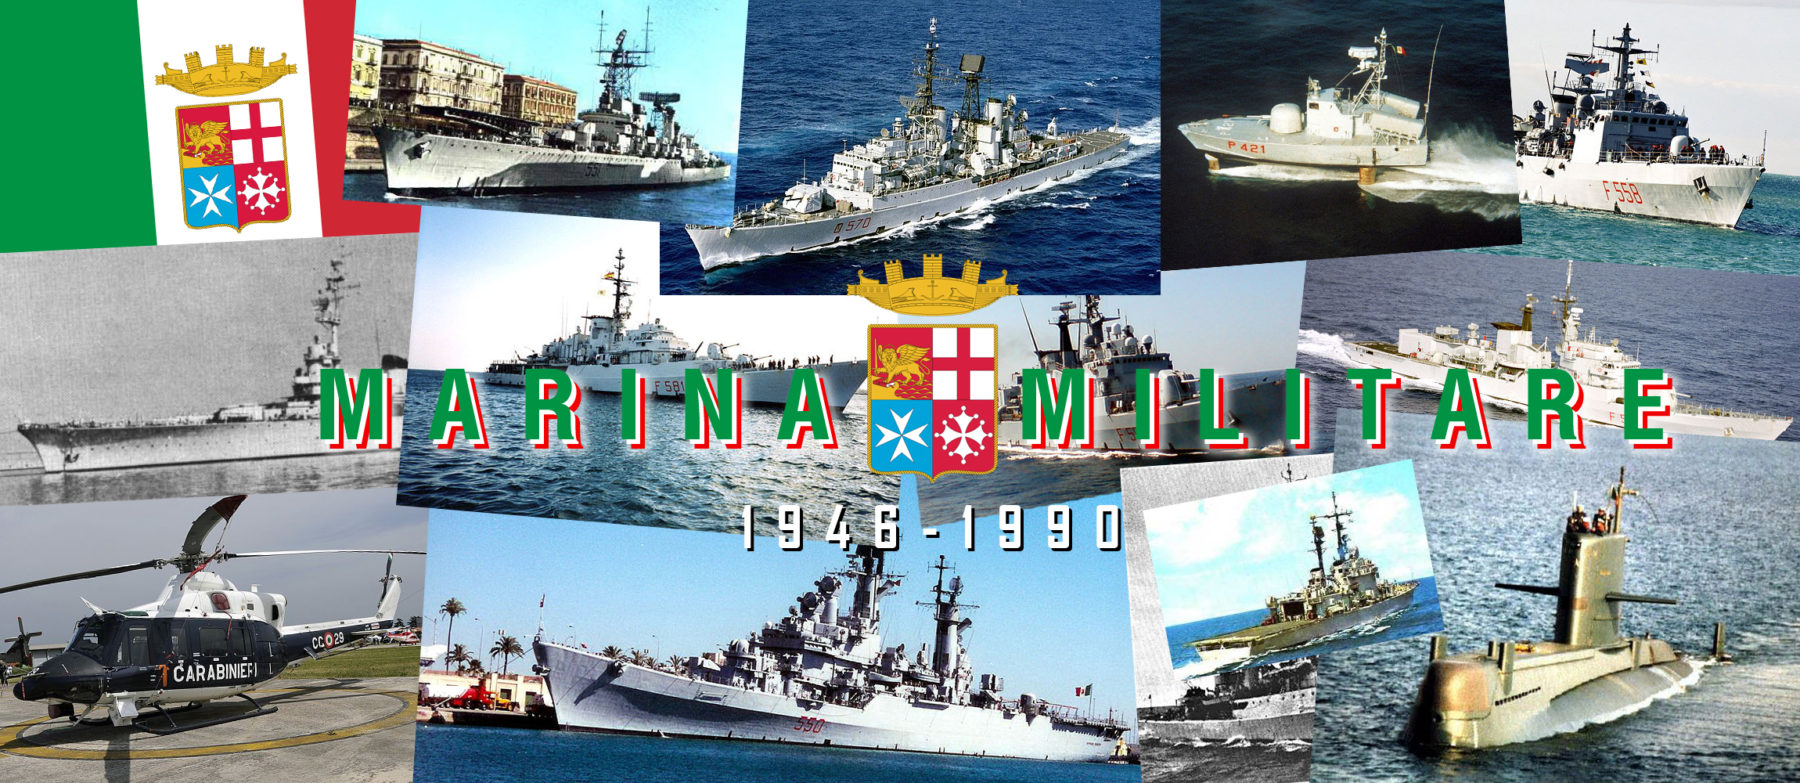 [New Page] The Marina Militare